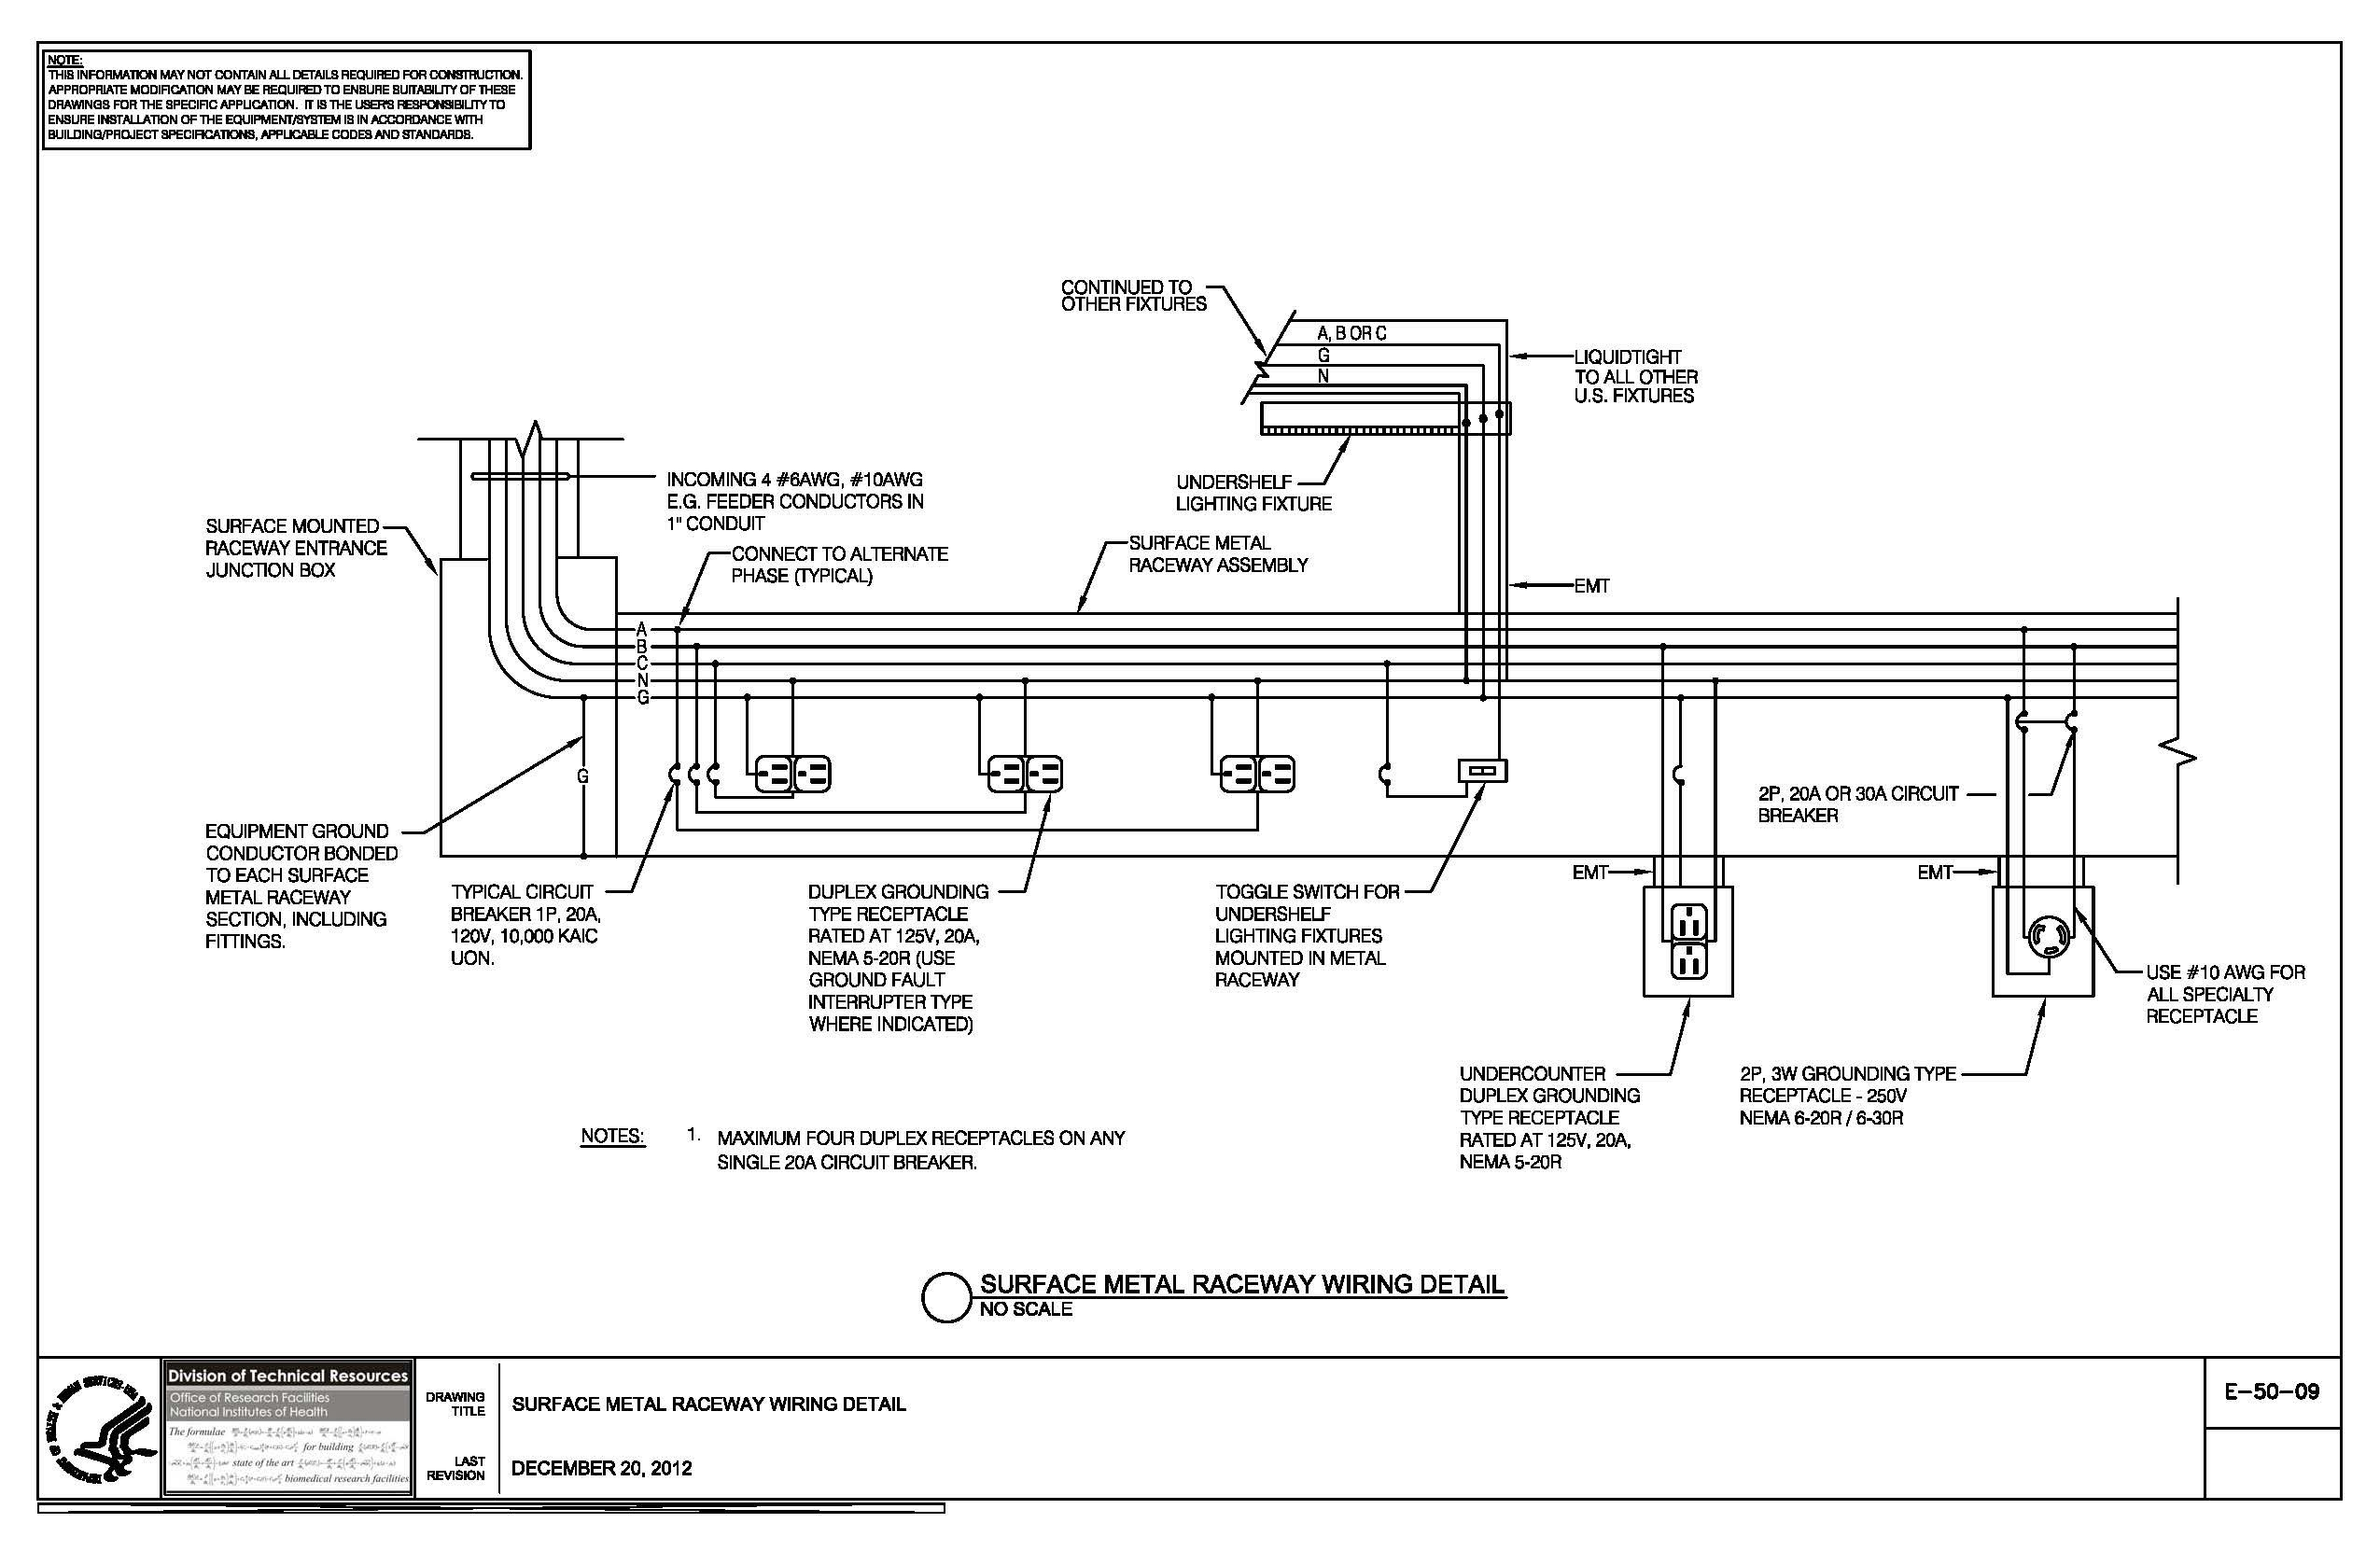 in ground pool electrical wiring diagram Download-swimming pool wiring diagram Collection of E 50 09 Surface Metal Raceway Wiring Detail NIH DOWNLOAD Wiring Diagram Detail Name swimming pool 18-f